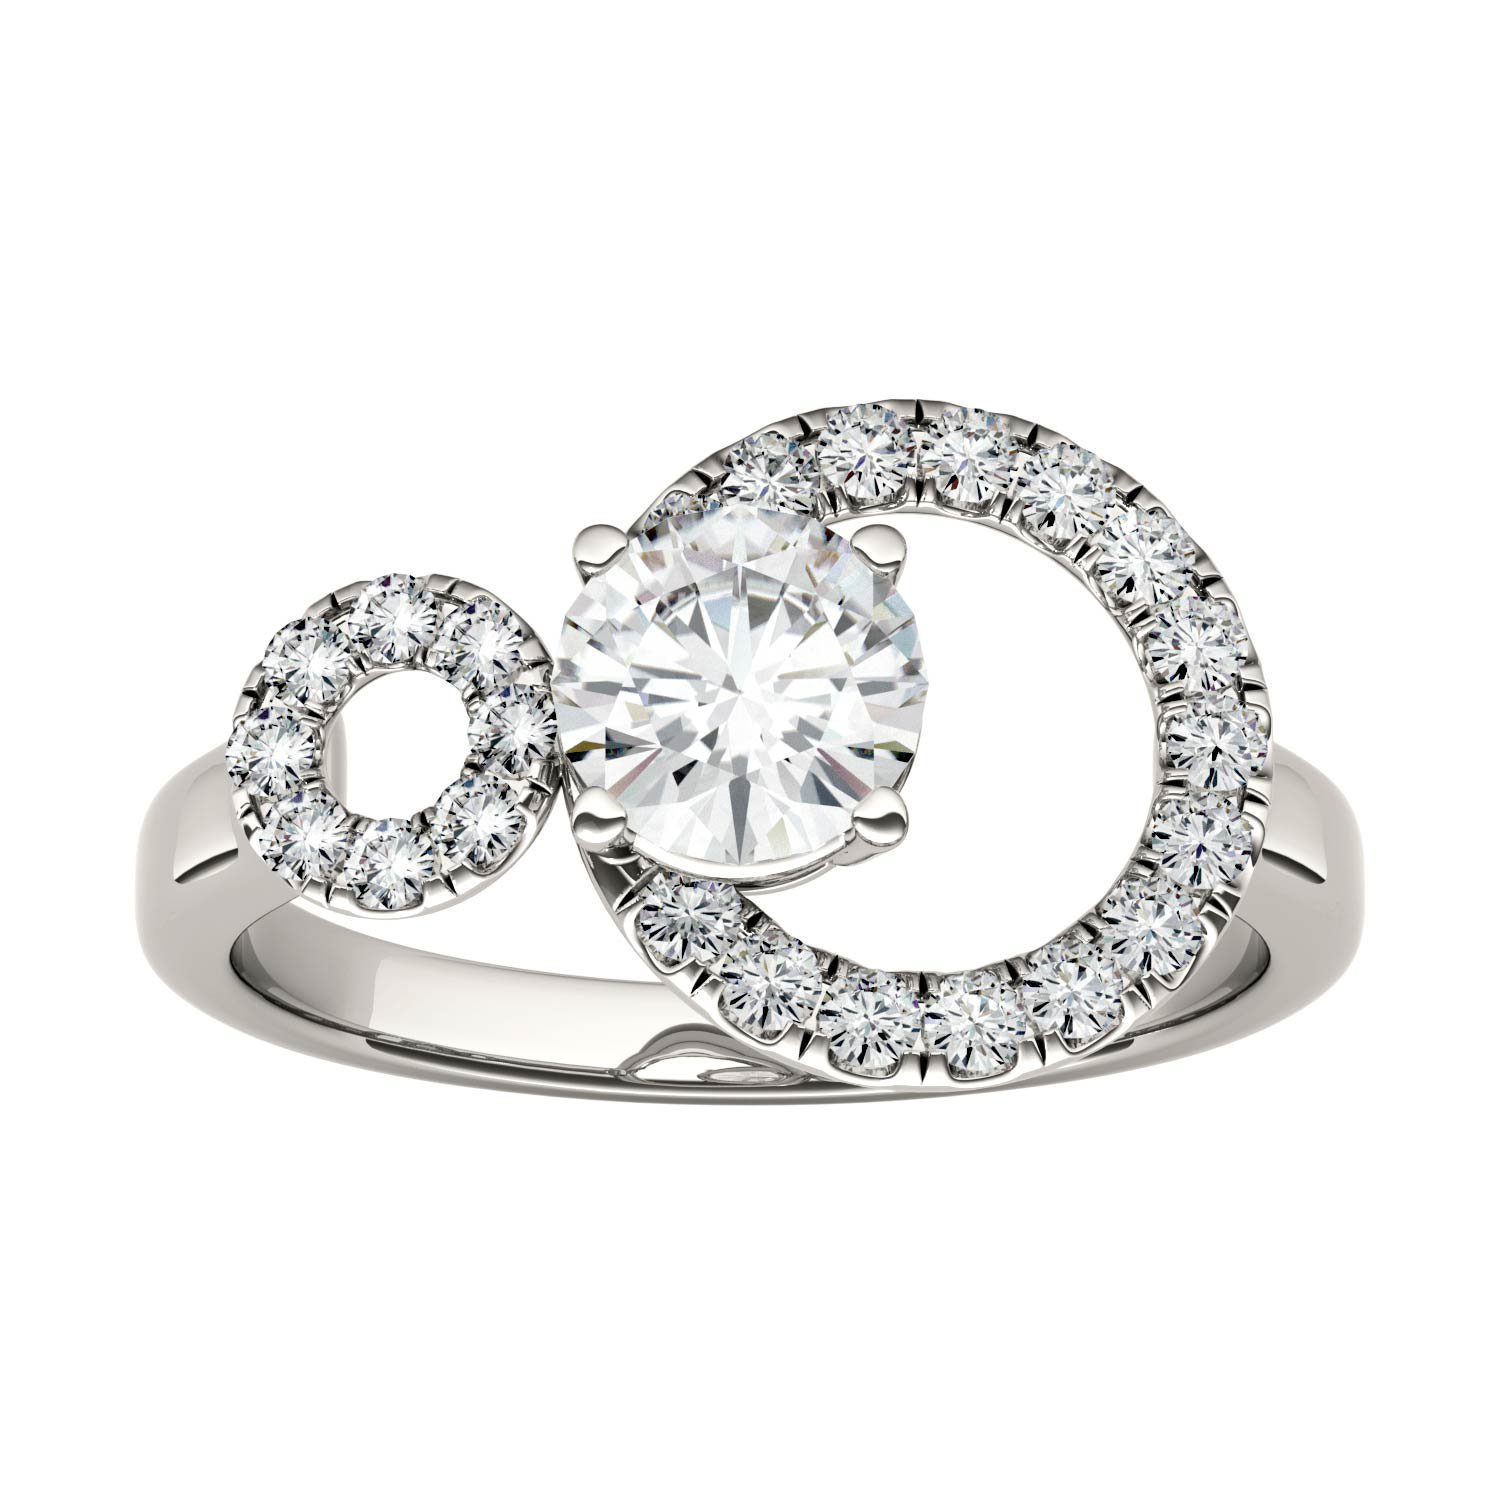 Forever Classic Double Circle 6.0mm Round Moissanite Ring-size 8, 1.04cttw DEW By Charles & Colvard